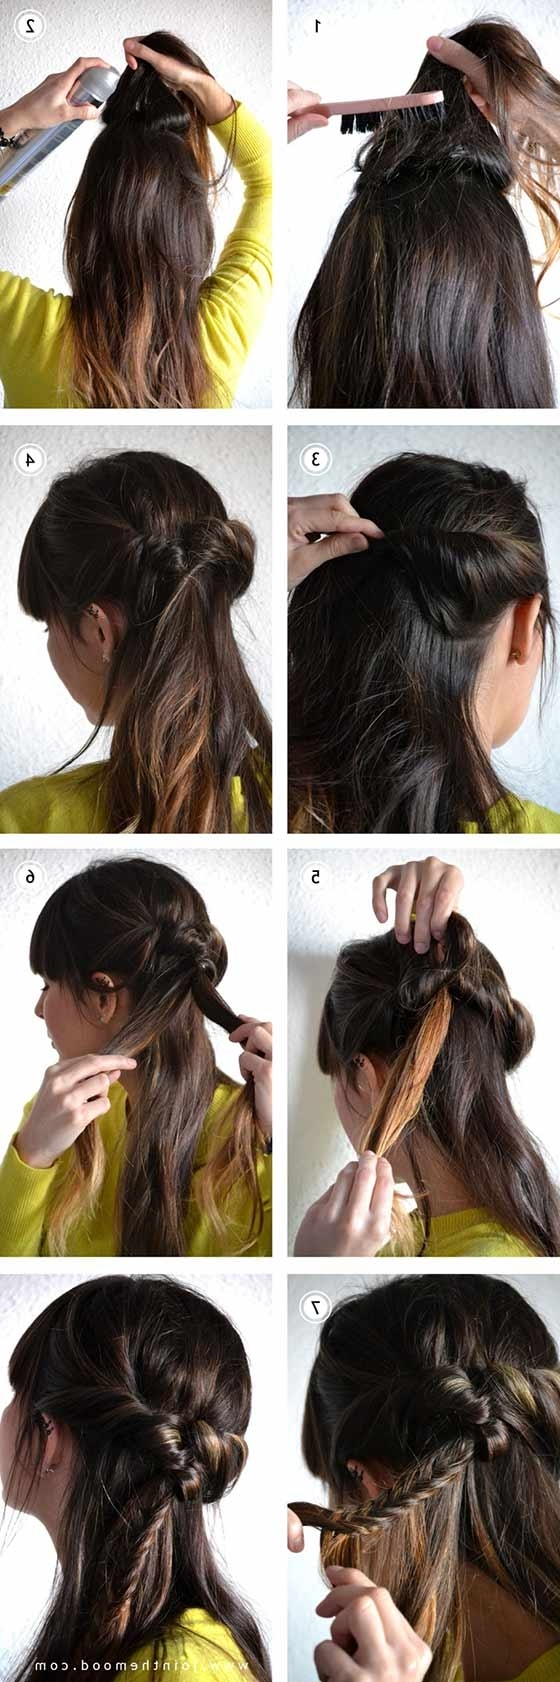 40 Braided Hairstyles For Long Hair Regarding Famous Loosely Braided Ponytail Hairstyles (View 12 of 20)